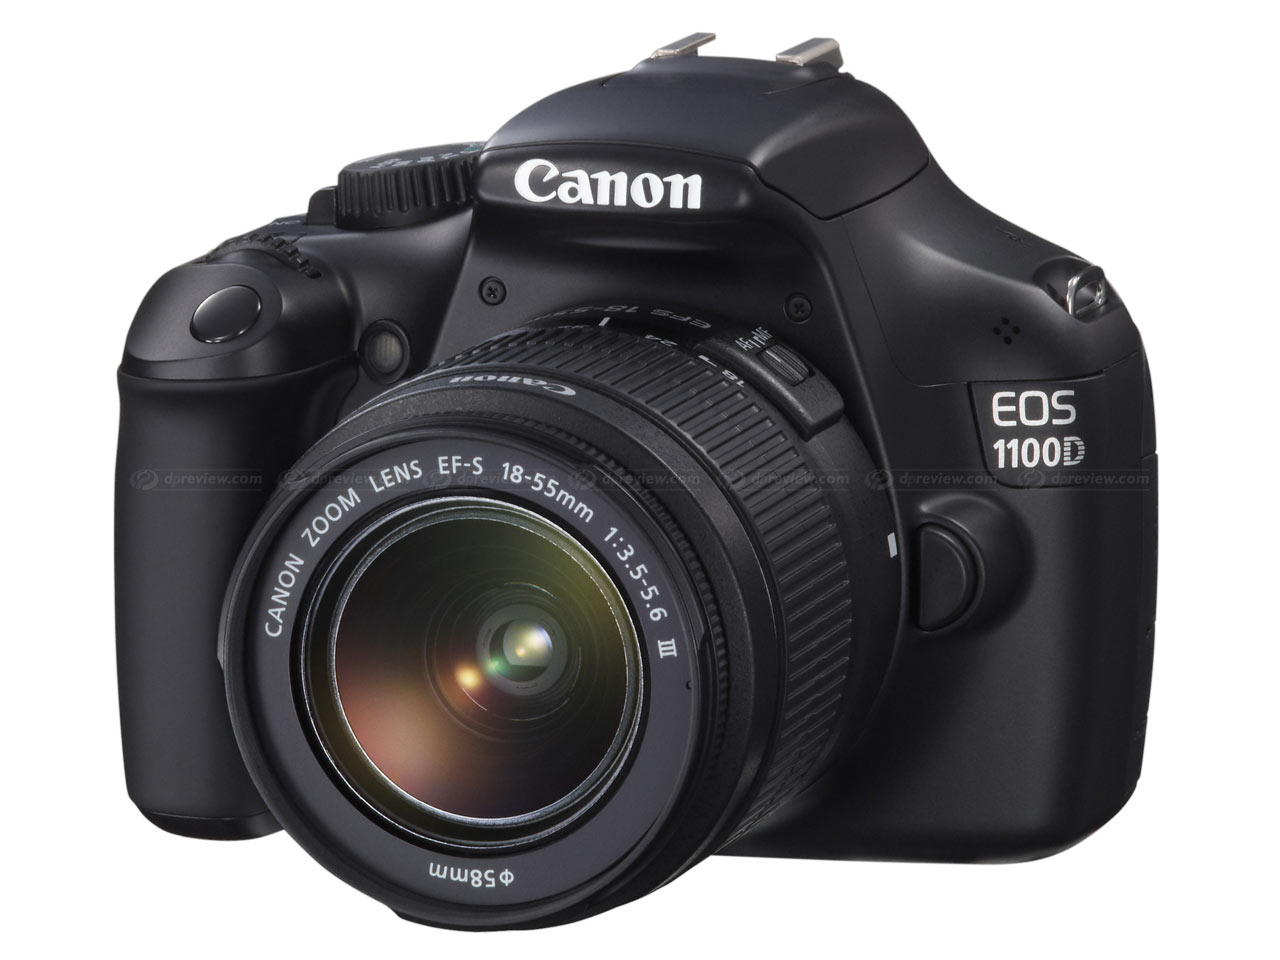 Boxed Canon EOS 1100D DSLR Camera With 18 55mm Kit Lens